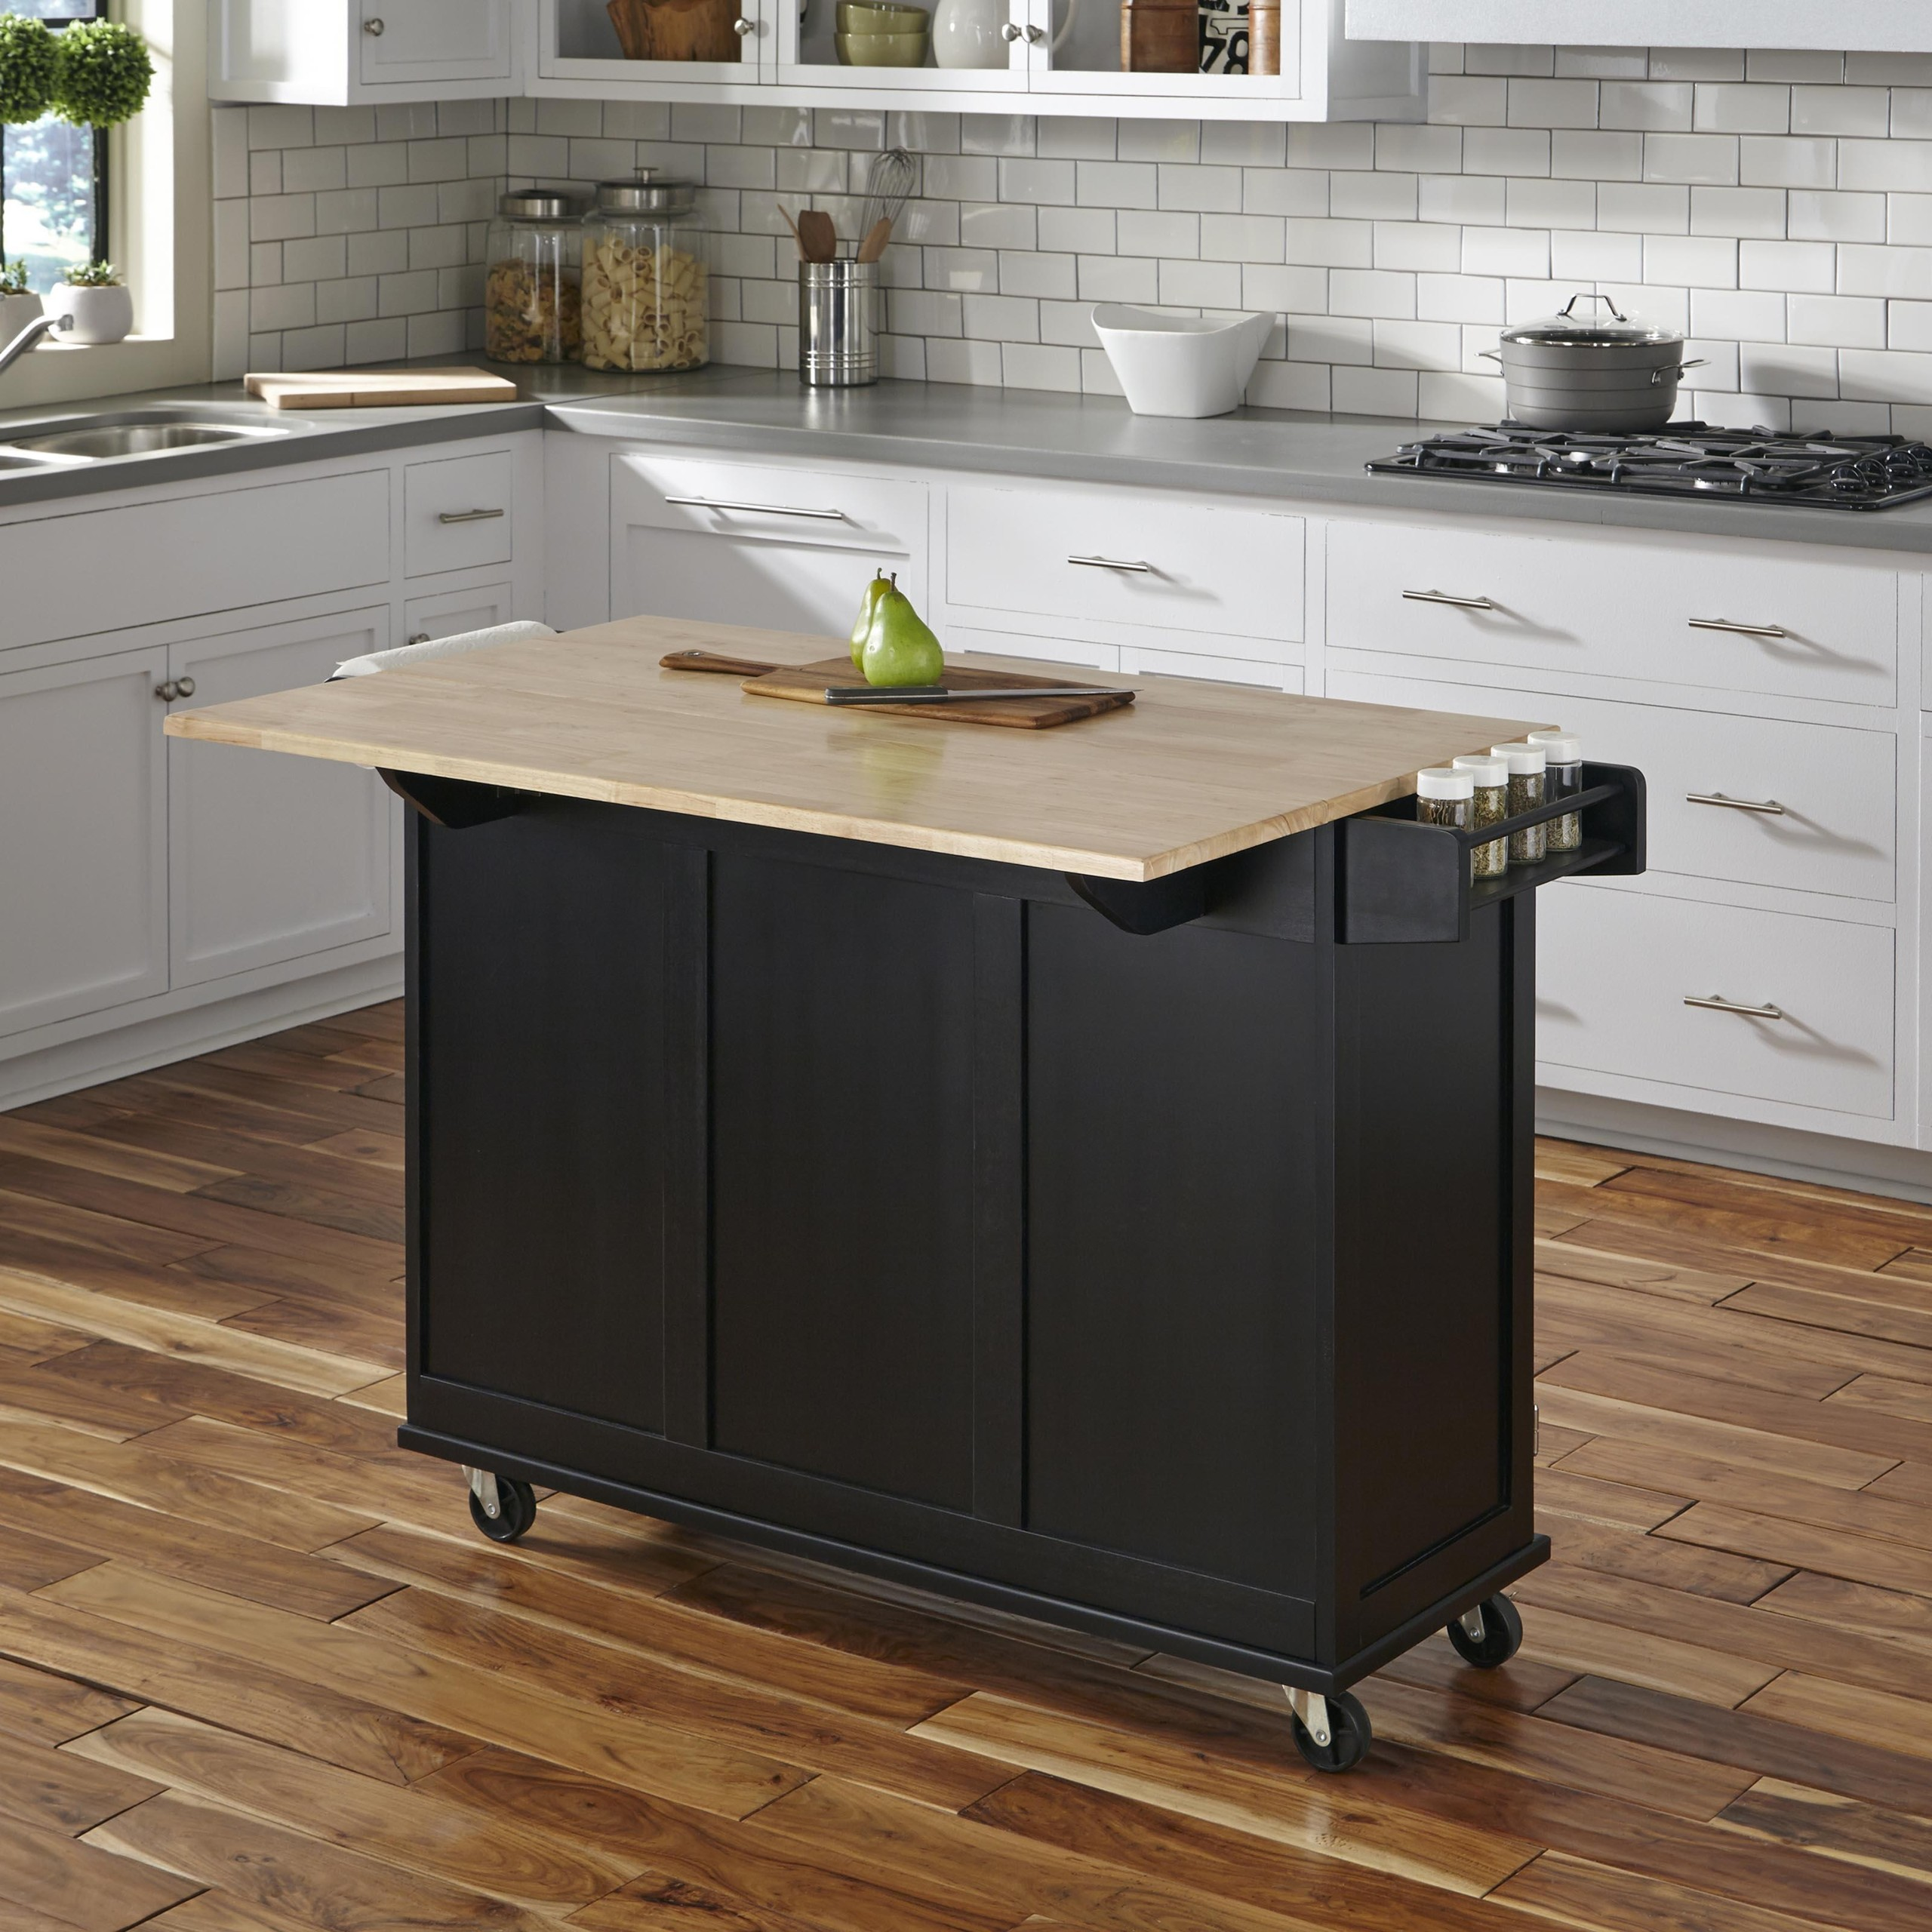 kitchen island table ideas 33 sink drop leaf on foter black engineered rubber wood